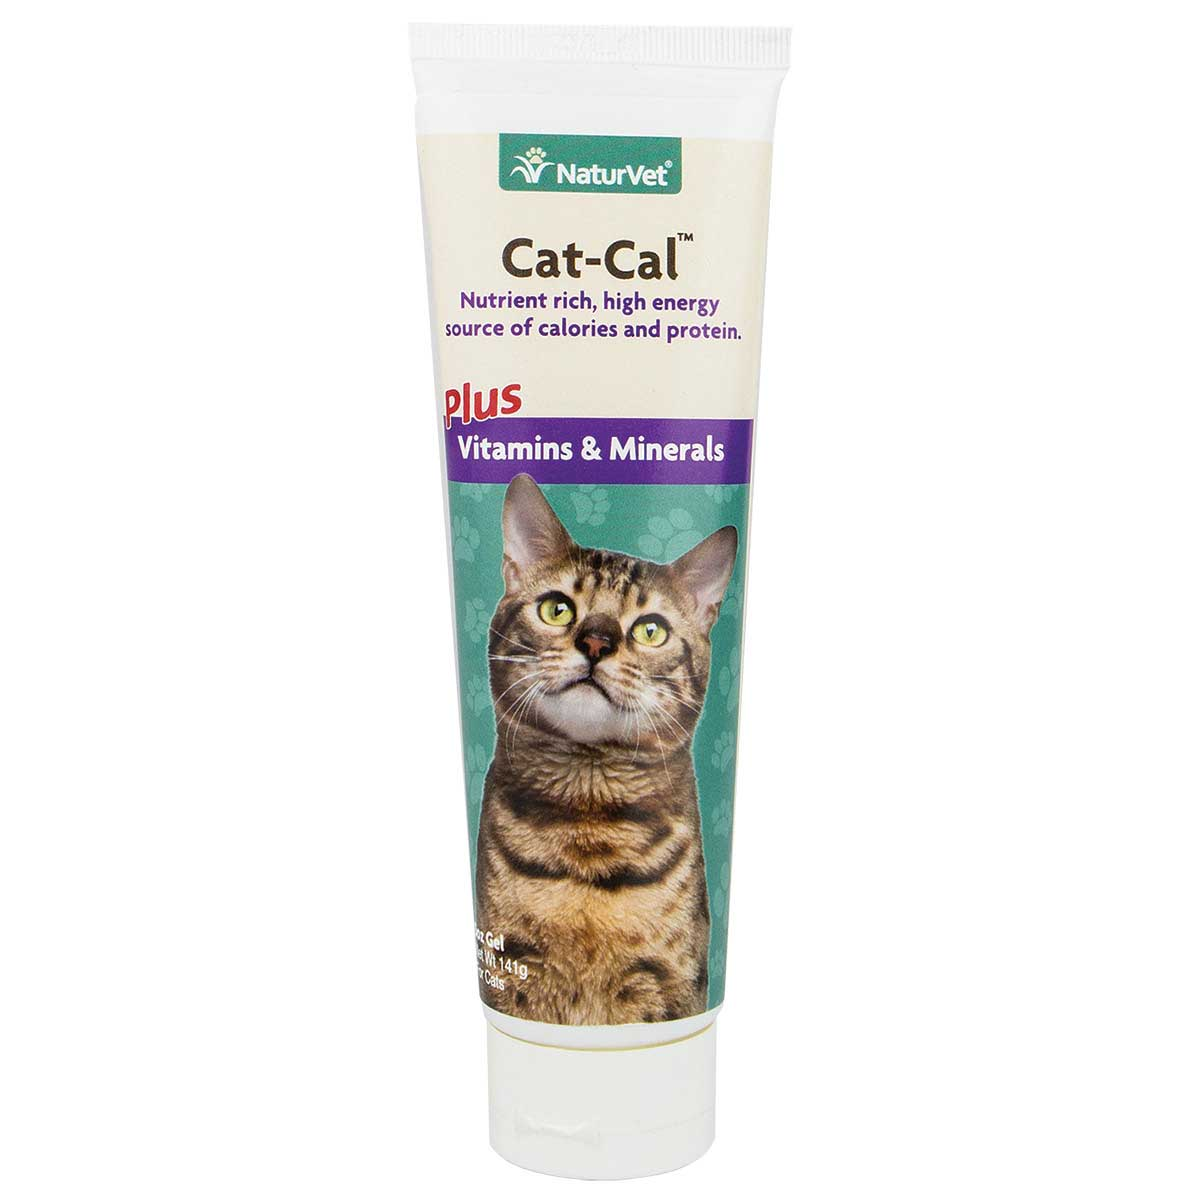 NaturVet Cat-Cal Plus Vitamins & Minerals Gel 5 oz